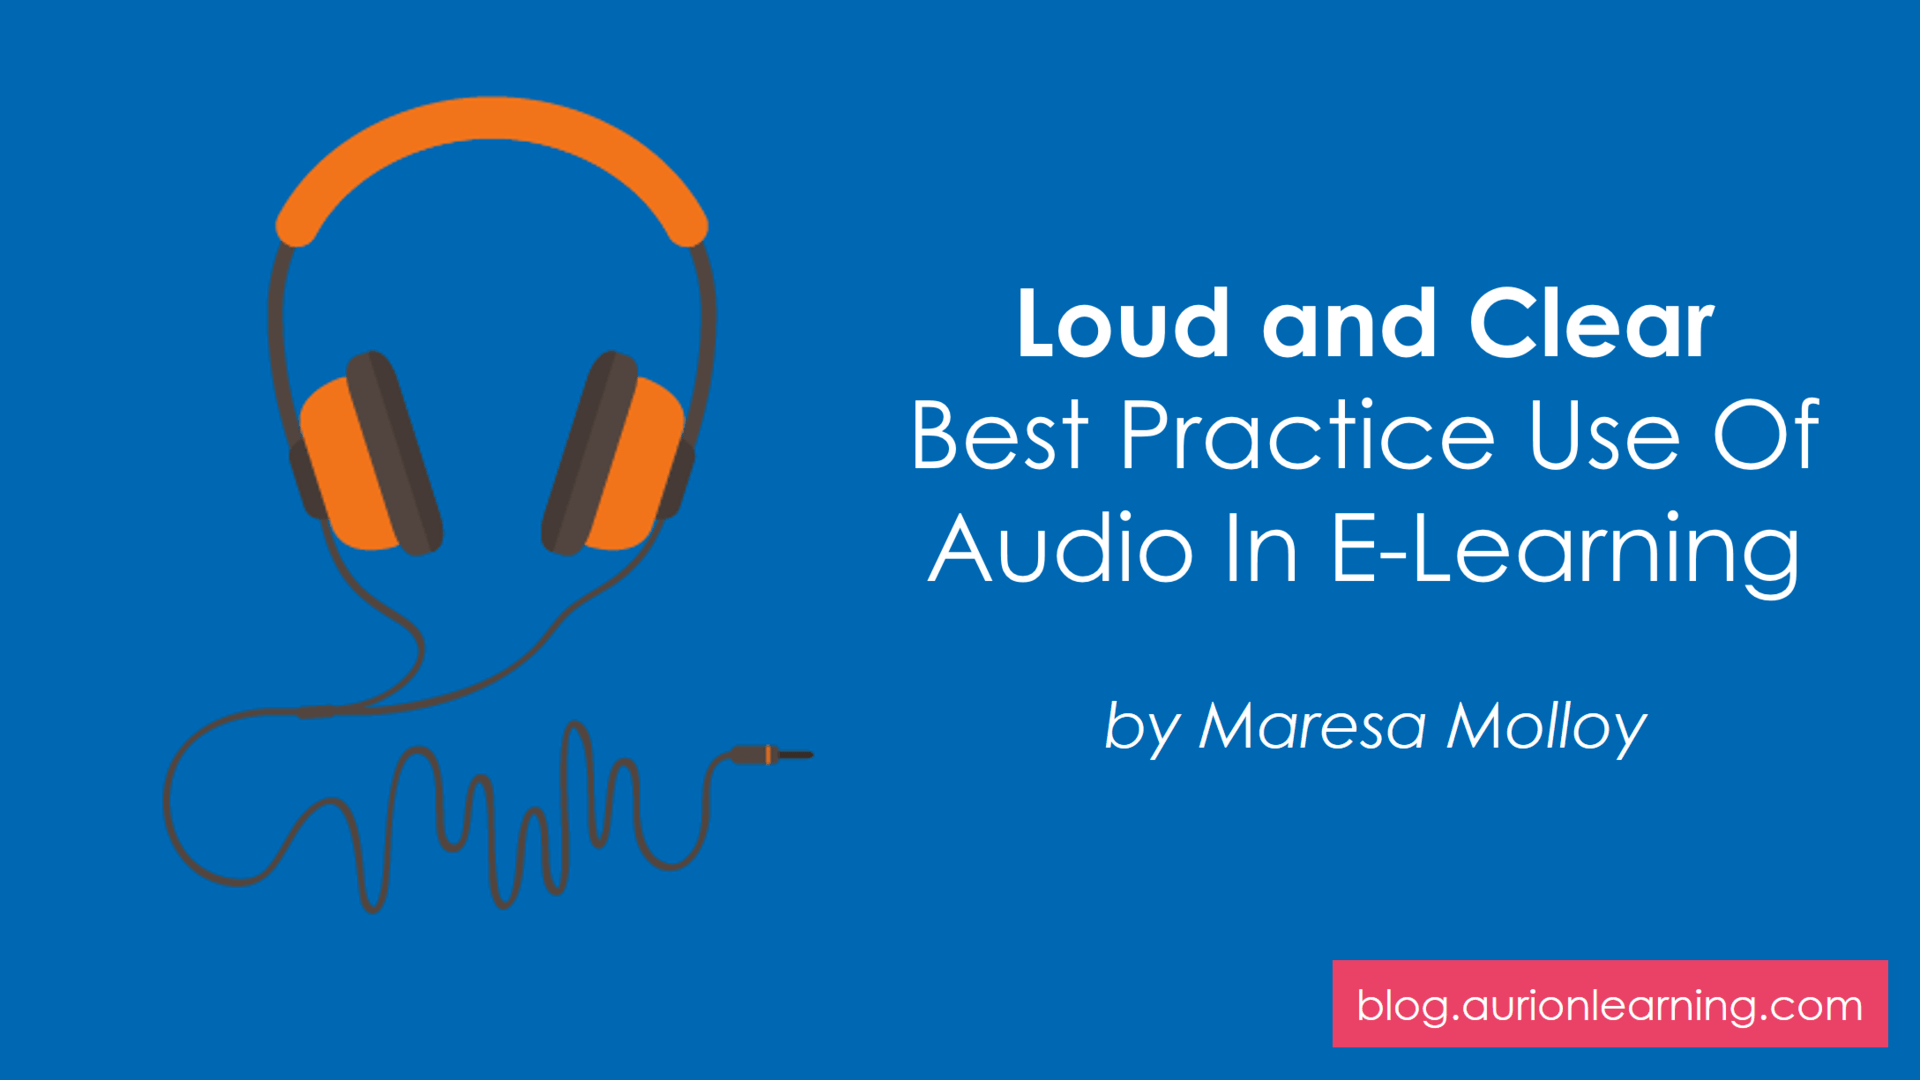 Loud and Clear: Best Practice Use of Audio in E-Learning | Aurion Learning thumbnail